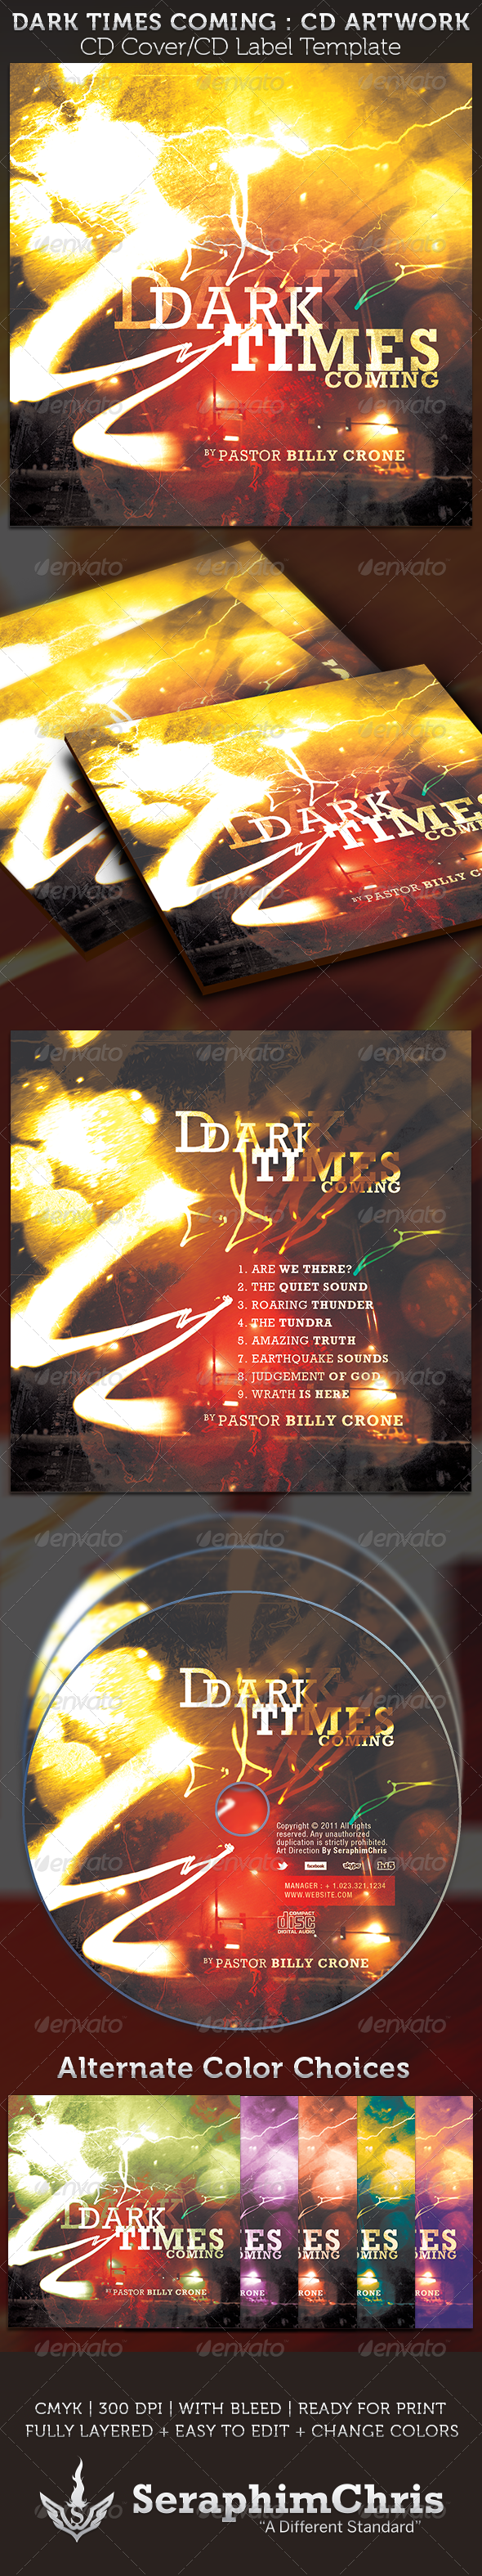 Dark Times Coming CD Cover Artwork Template - CD & DVD artwork Print Templates